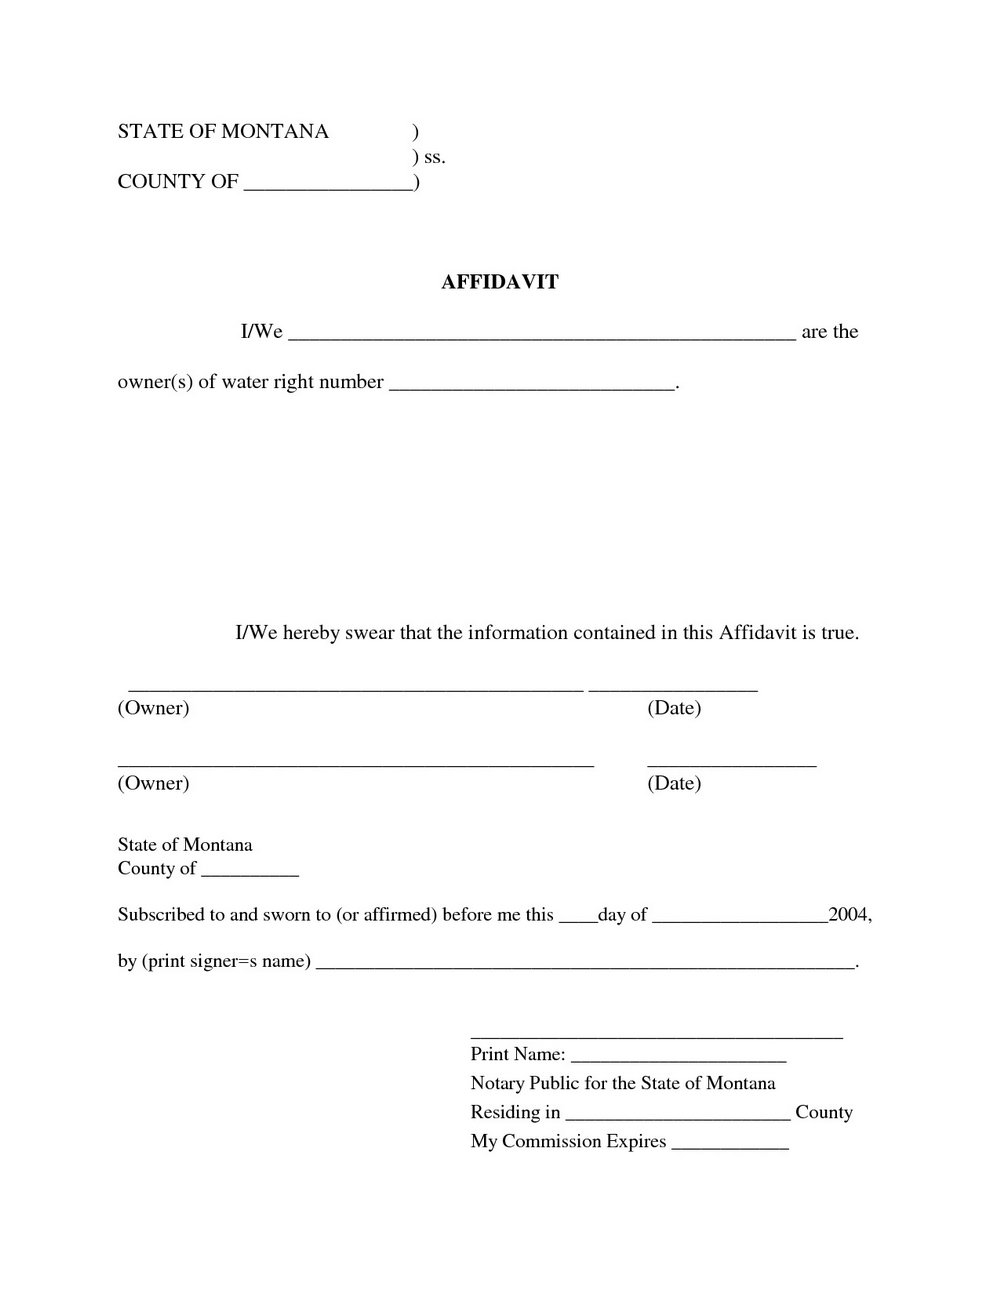 Affidavit Sample Format